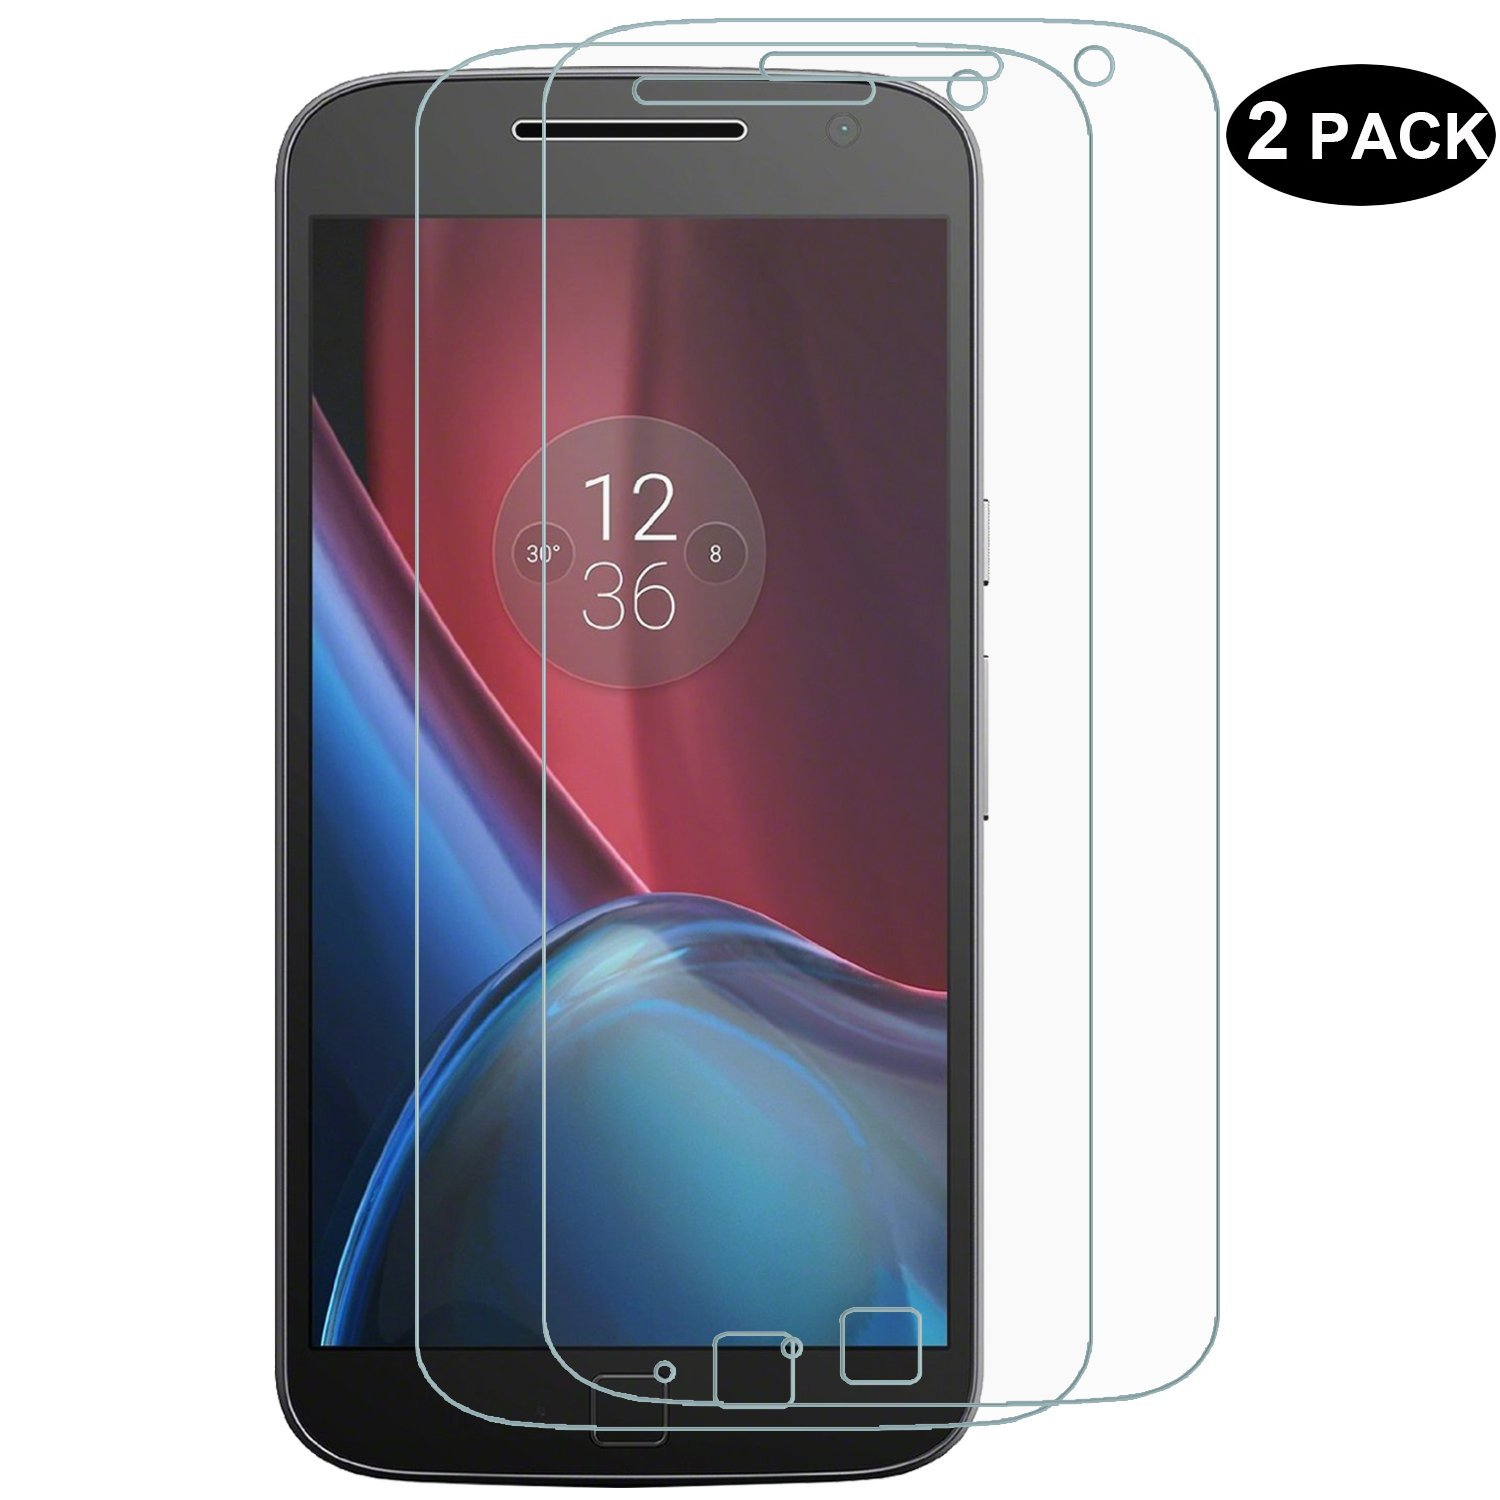 [2 Pack] RBEIK Moto G Plus 4th Generation Screen Protector, Tempered Glass Protector for Motorola Moto G Plus (4th Gen.) with [Scratch-resistant] [Bubble Free]